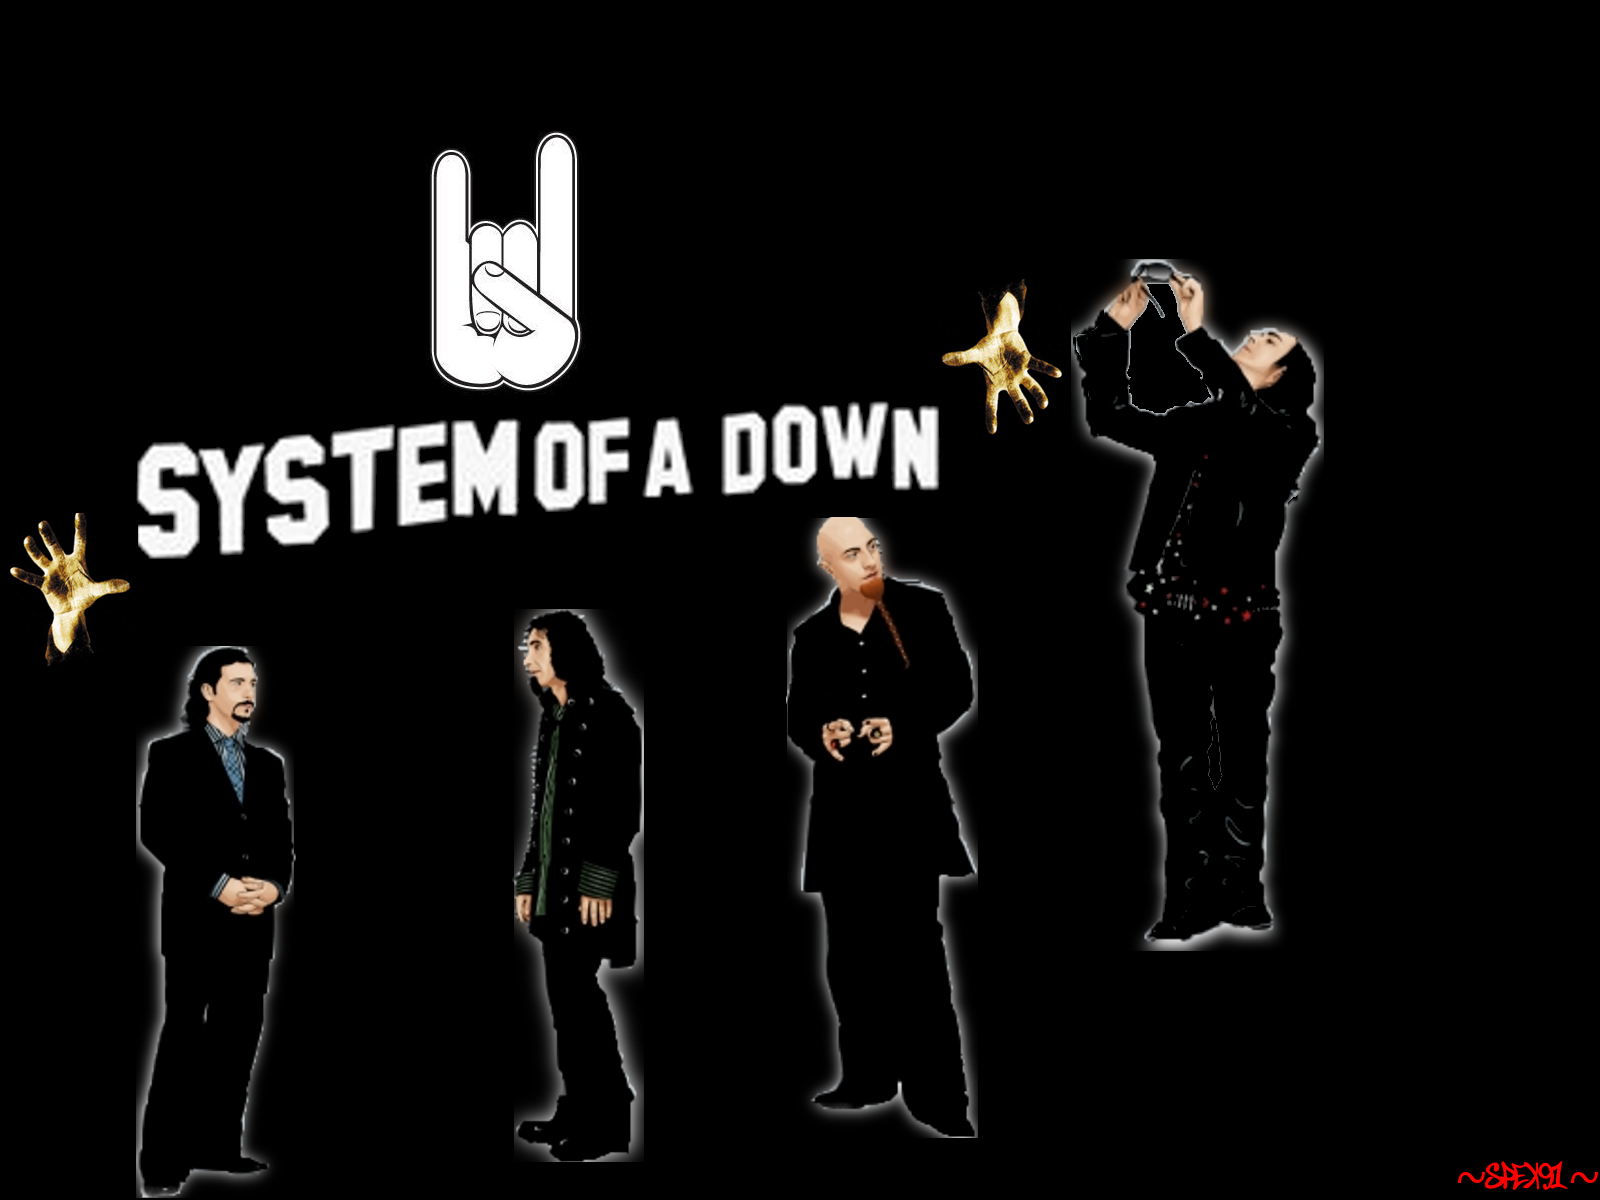 System Of A Down Wallpaper By Spex91 On Deviantart